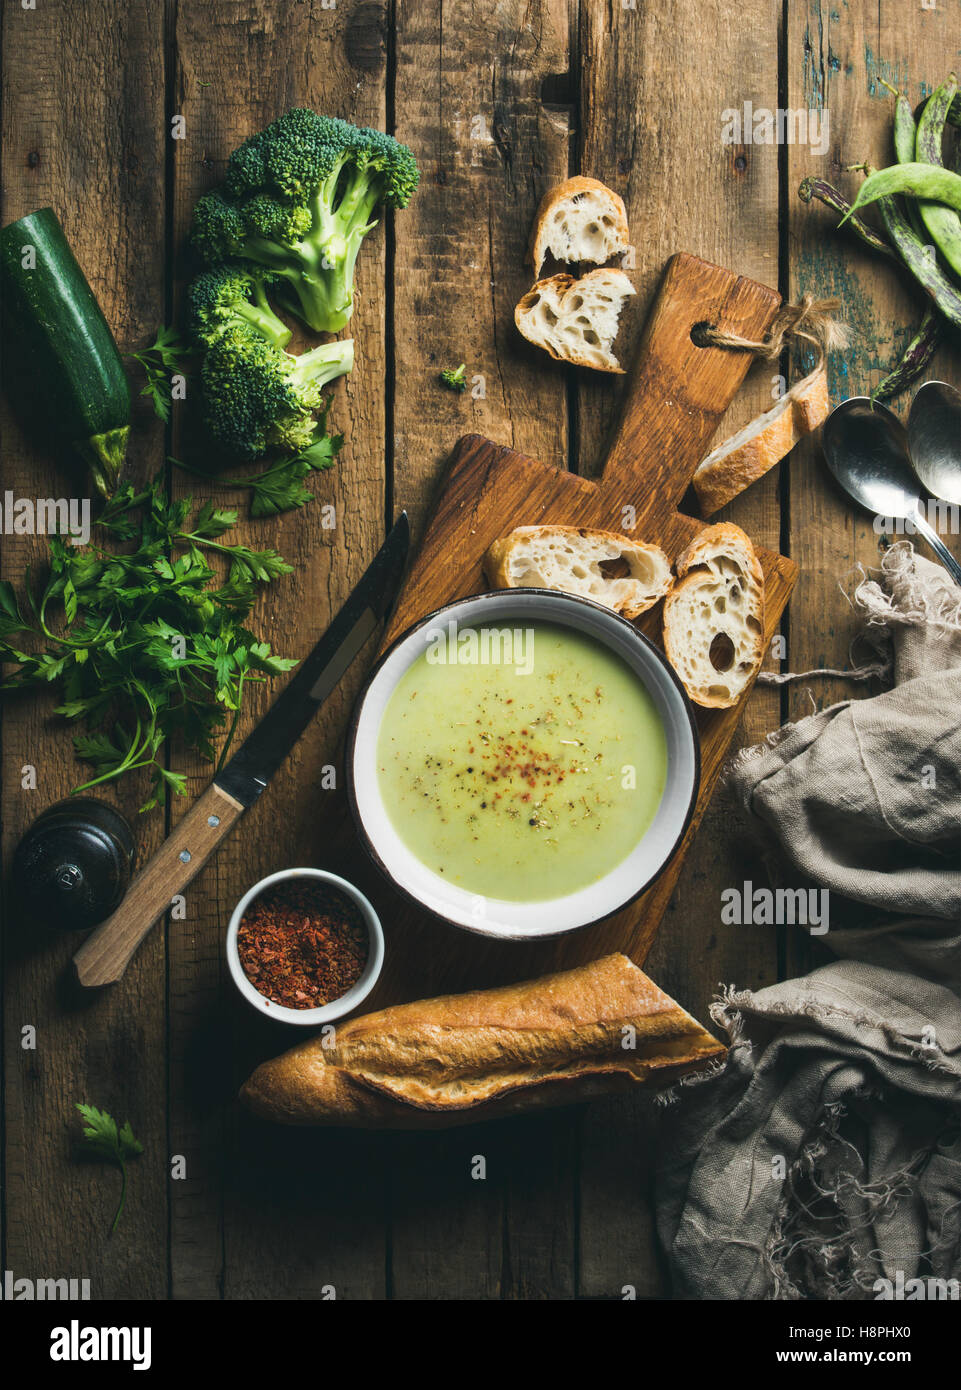 Homemade pea, broccoli, zucchini cream soup with fresh baguette - Stock Image